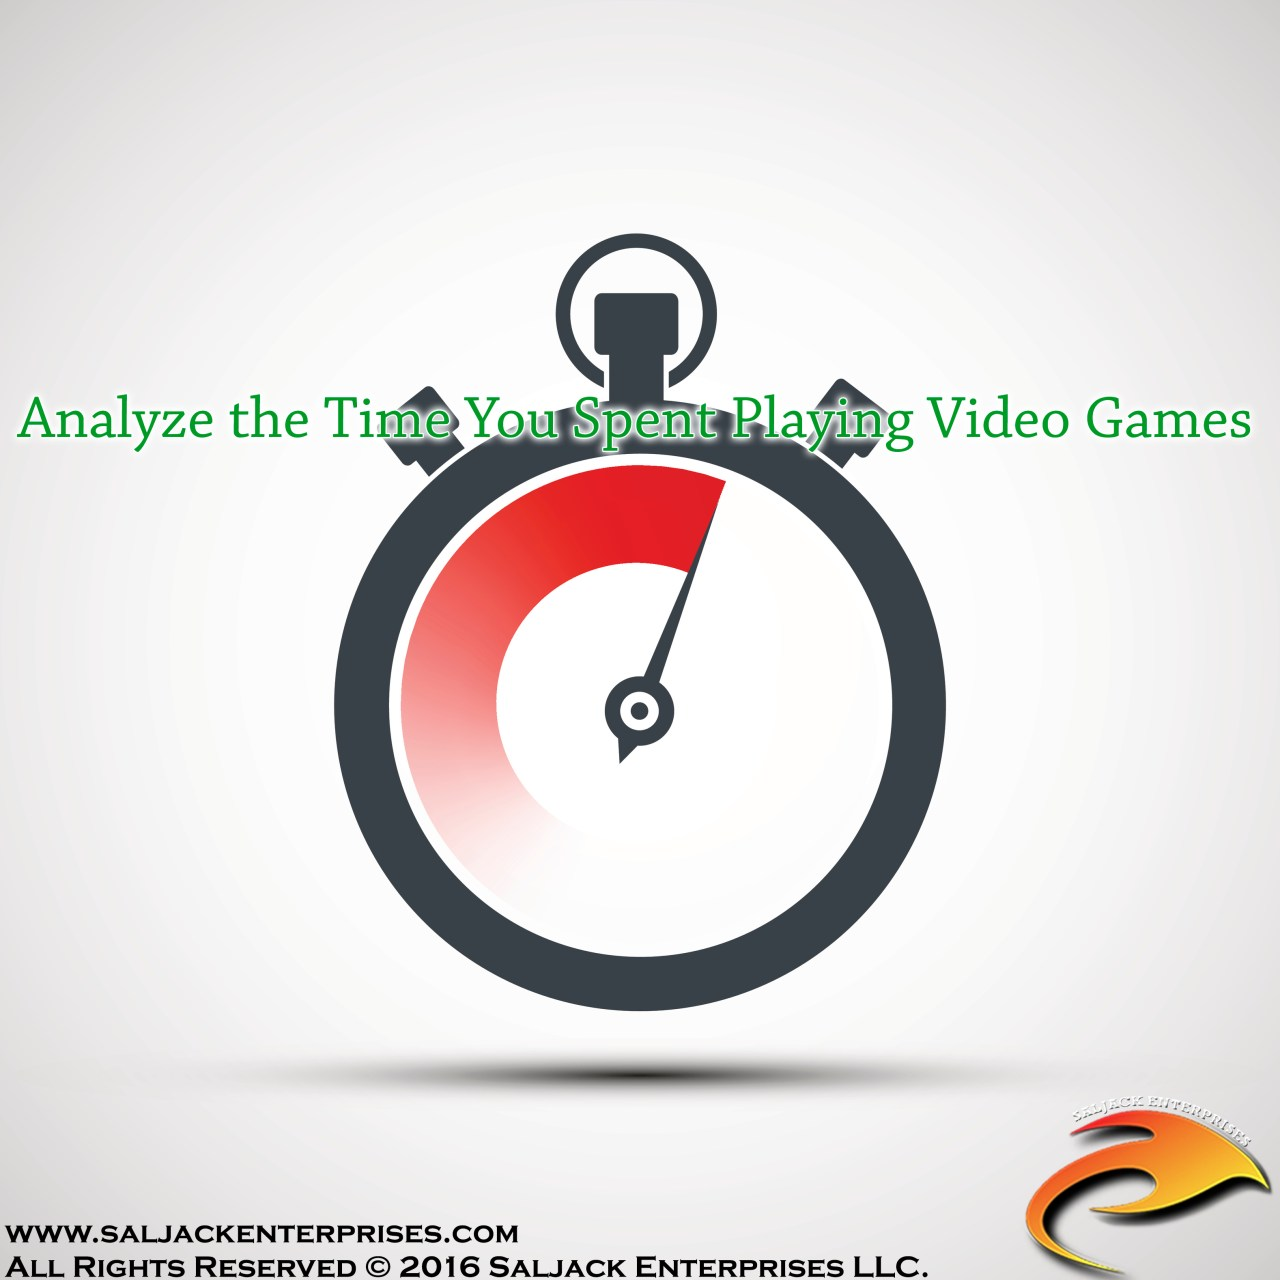 Analyze the Time You Spent Playing Video Games. Presented by Saljack Enterprises. Gaming. Media & Entertainment.